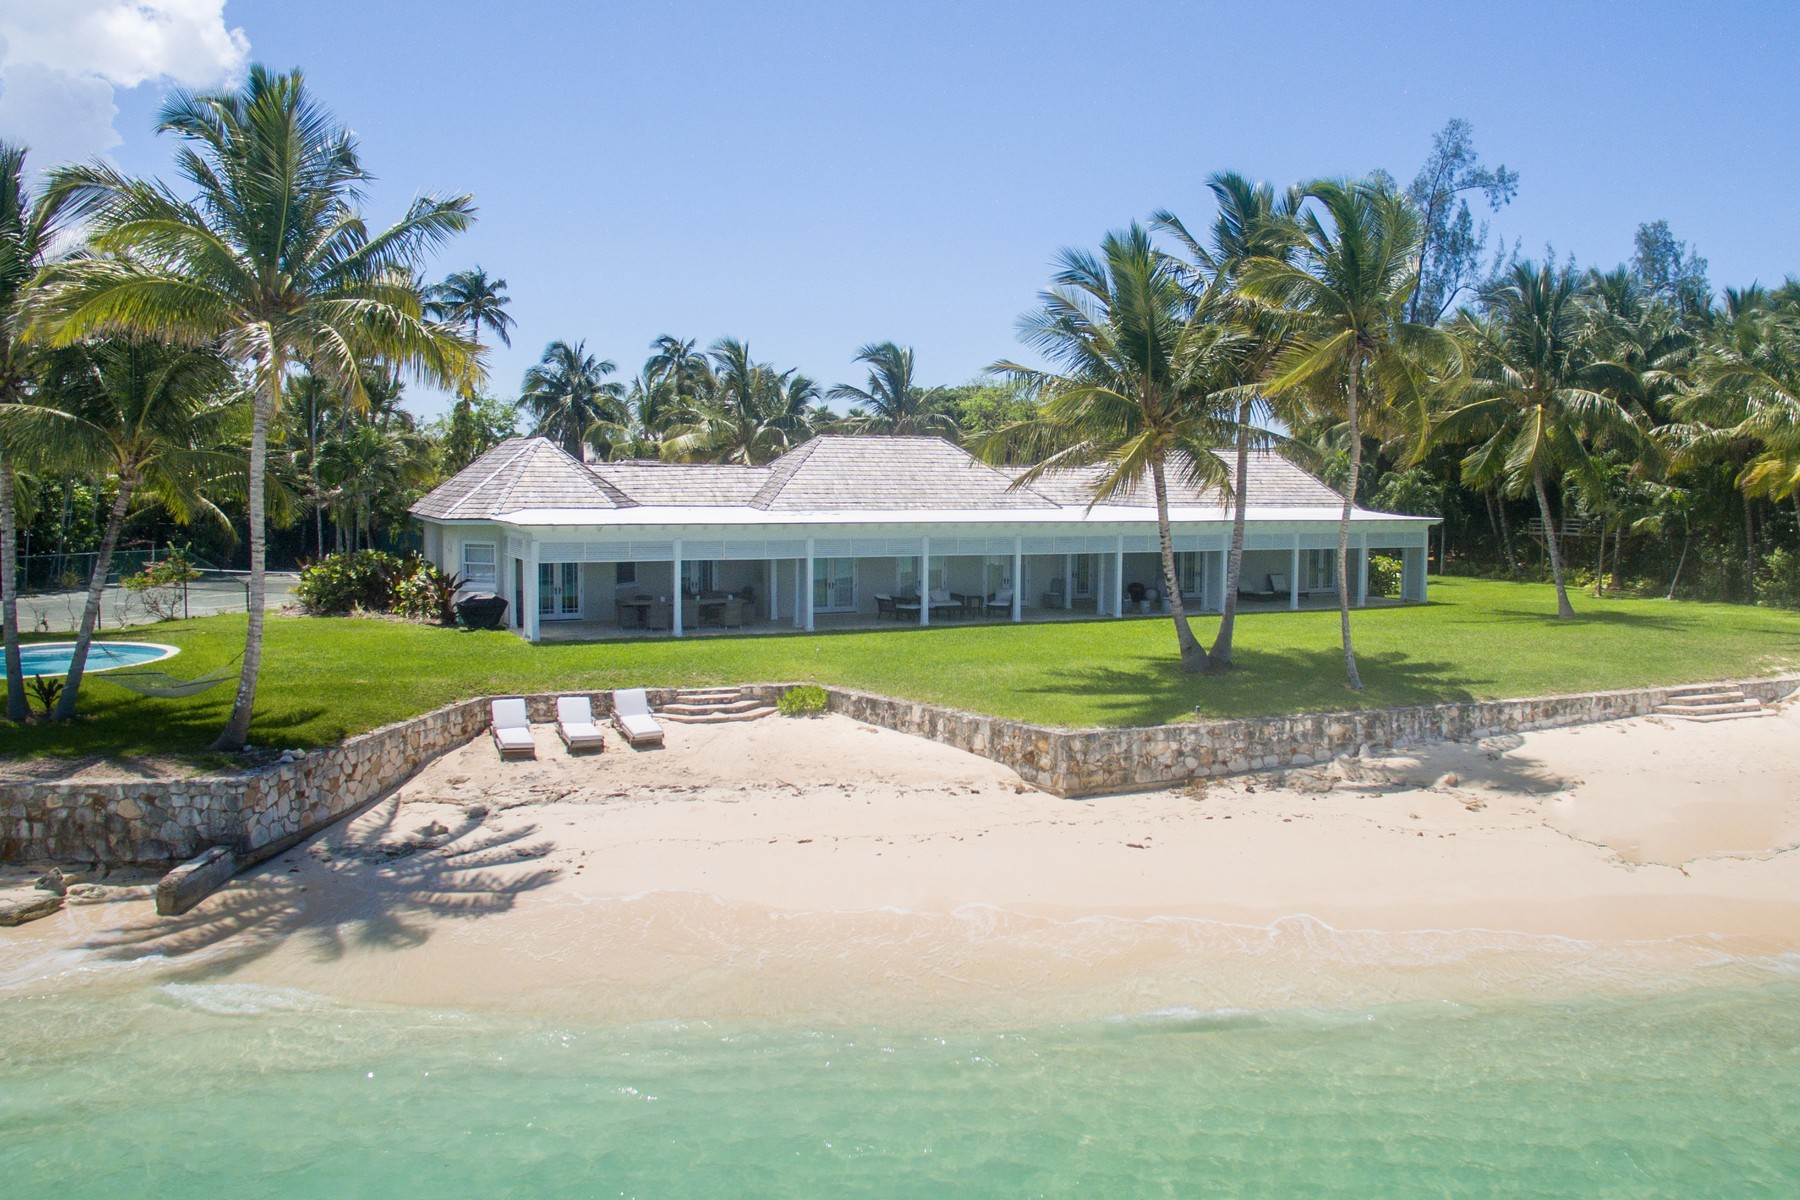 Single Family Home for Sale at Orchid House Lyford Cay, Nassau And Paradise Island, Bahamas